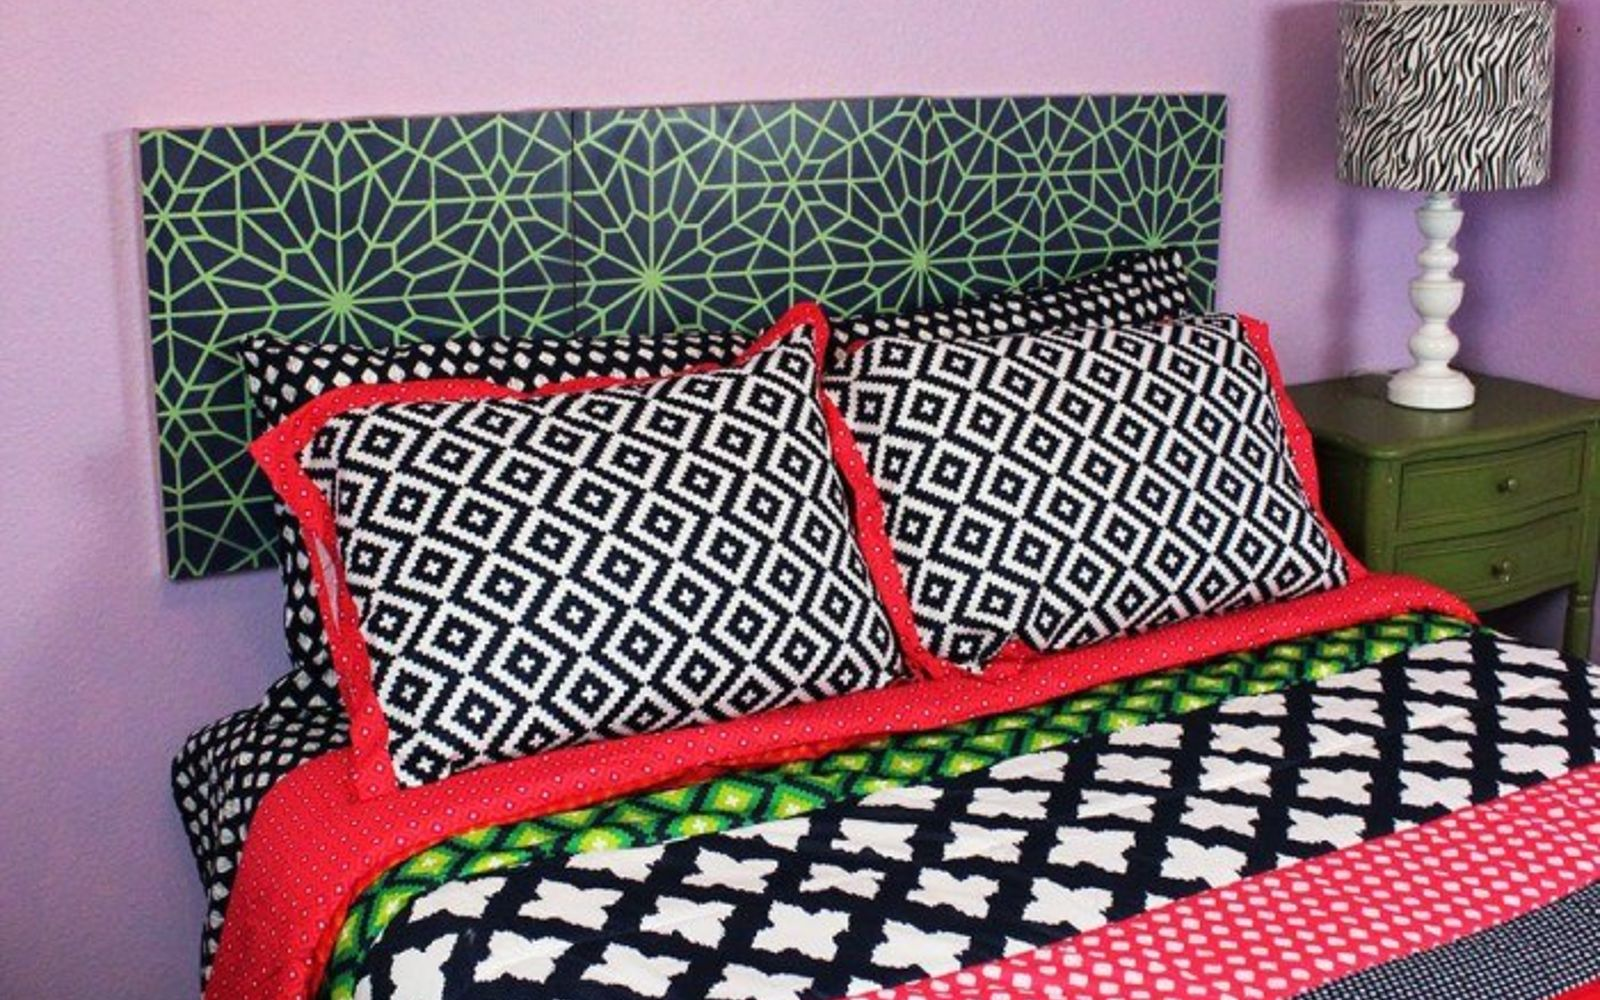 s these are the diy headboard ideas you ve been dreaming of, Stencil An Intricate Stylish Pattern